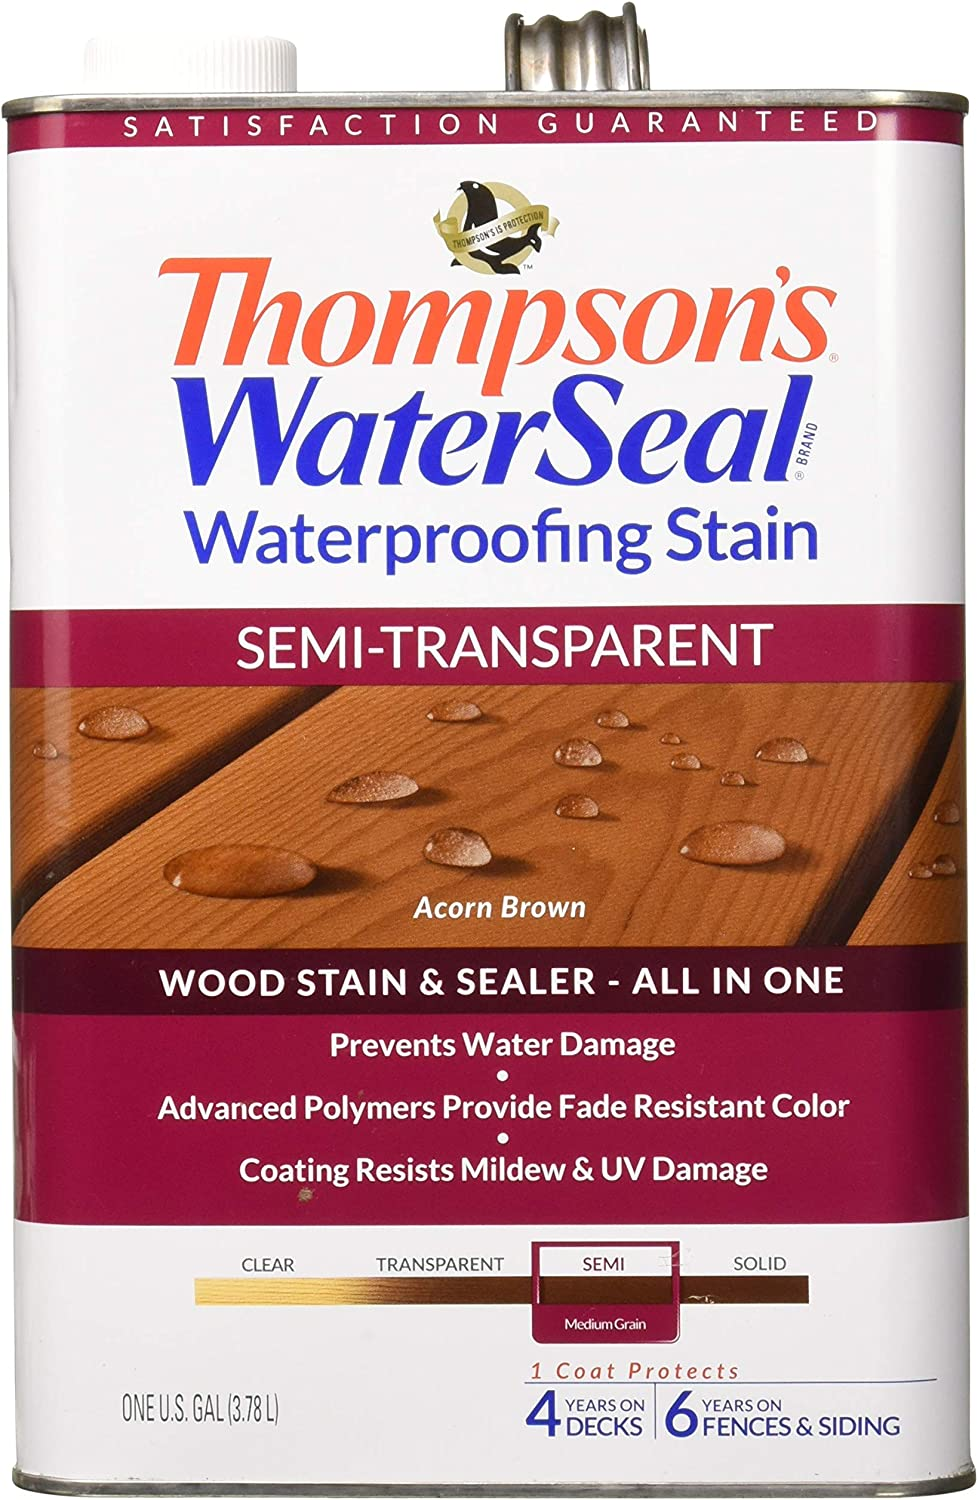 Thompson's TH.042841-16 Waterseal Waterproffing Stain - Semi Transparent, Acorn Brown, 1 gallon